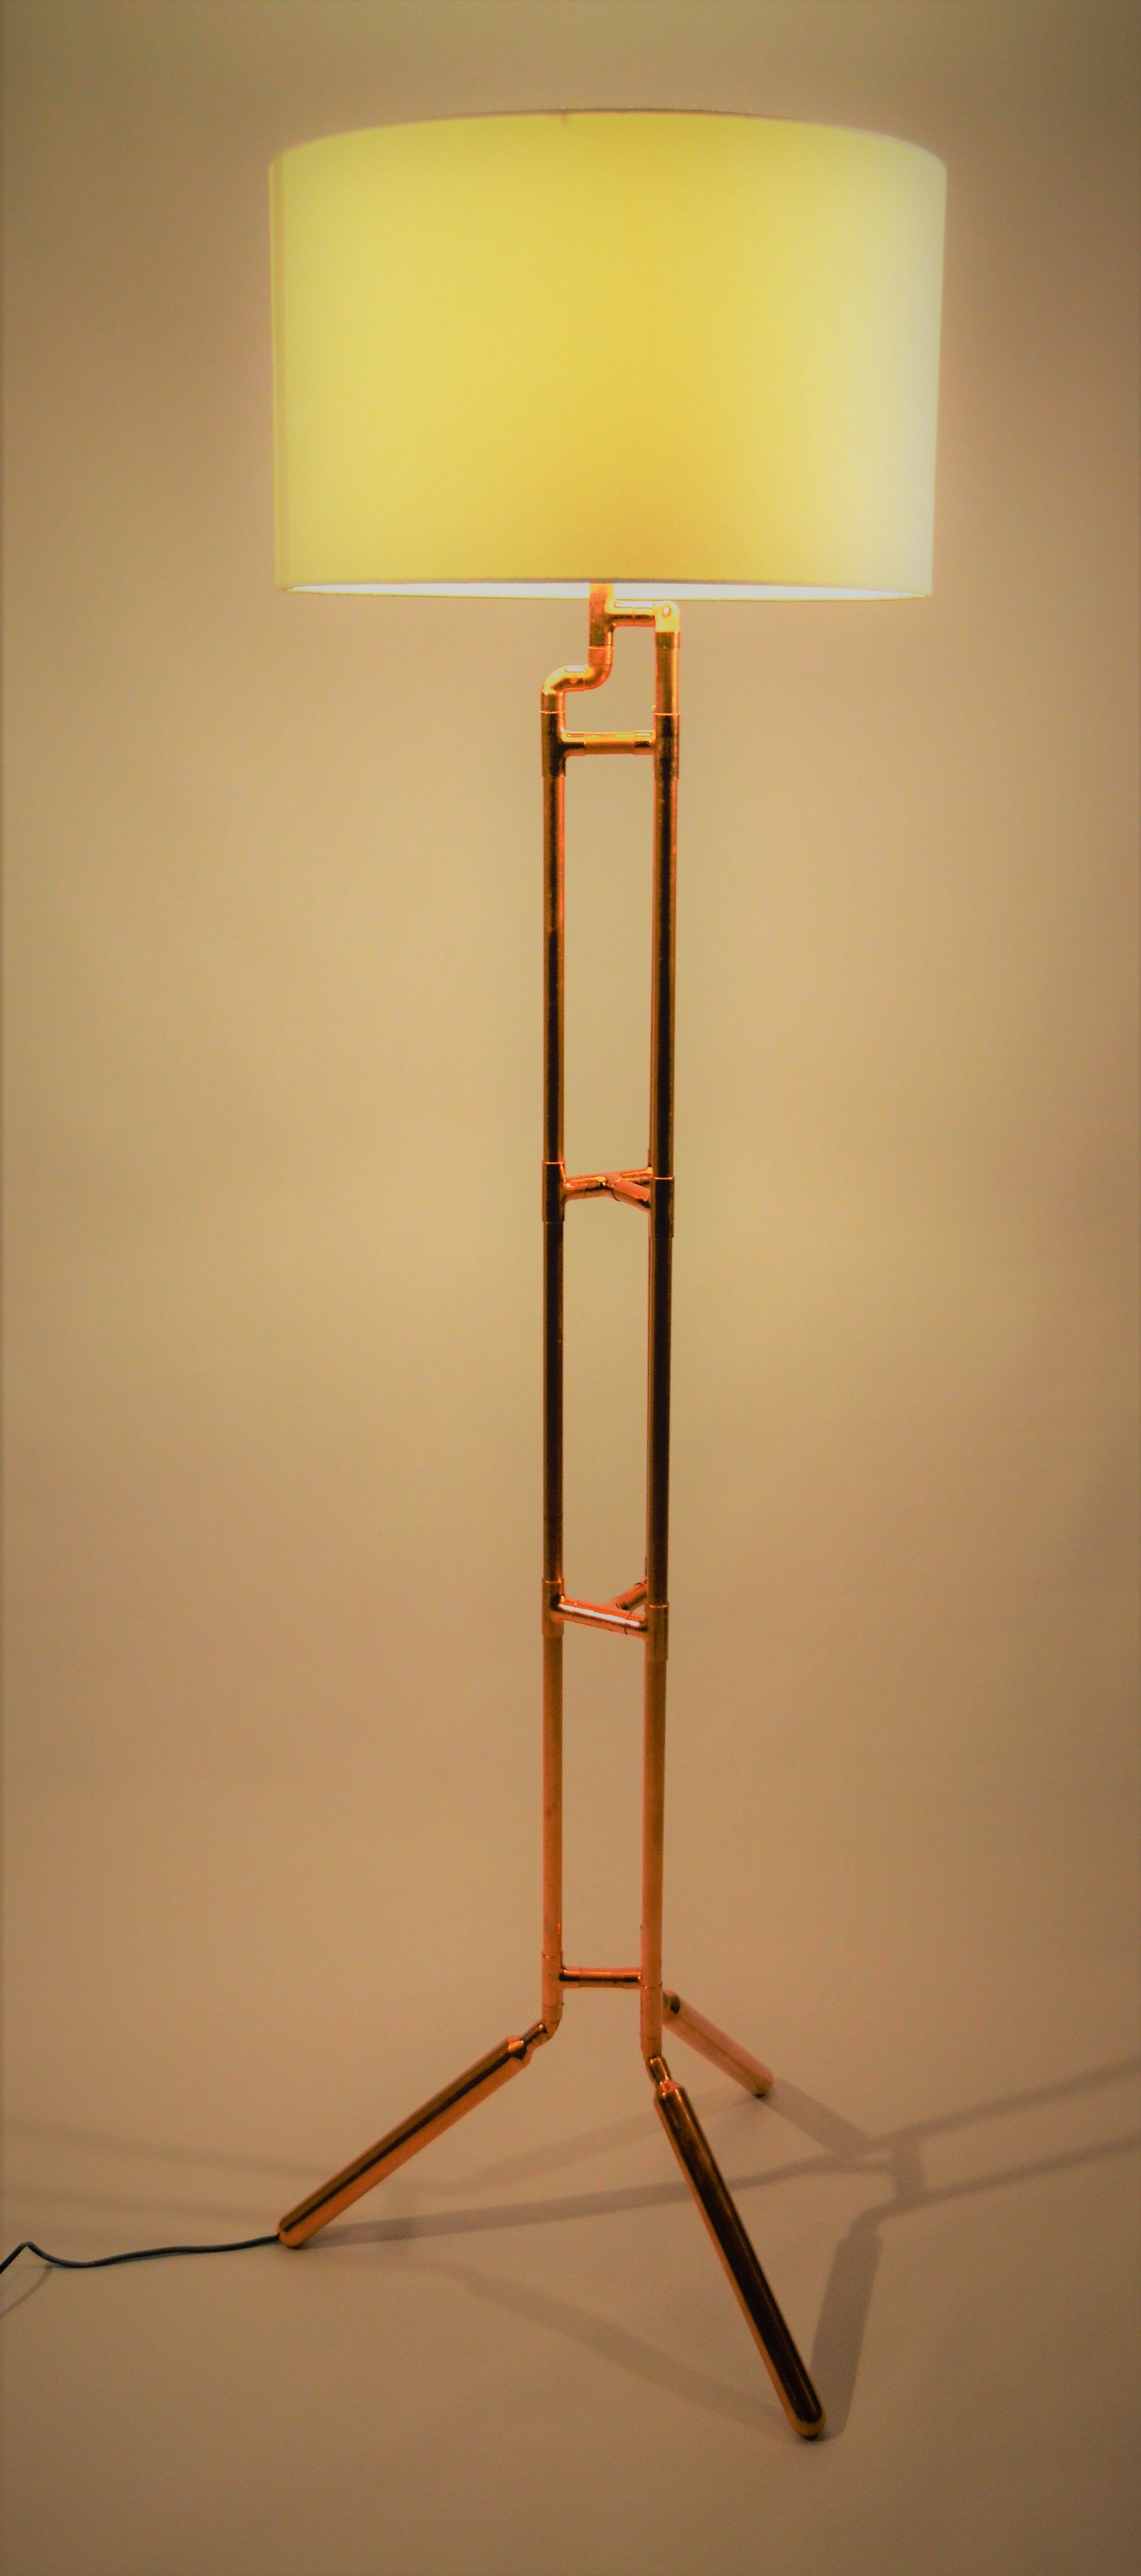 Tri Tube Tower Lamp An Atd Copper Creations Ltd Original Copper Tube Lamp Design Lamp Design Lamp Copper Floor Lamp